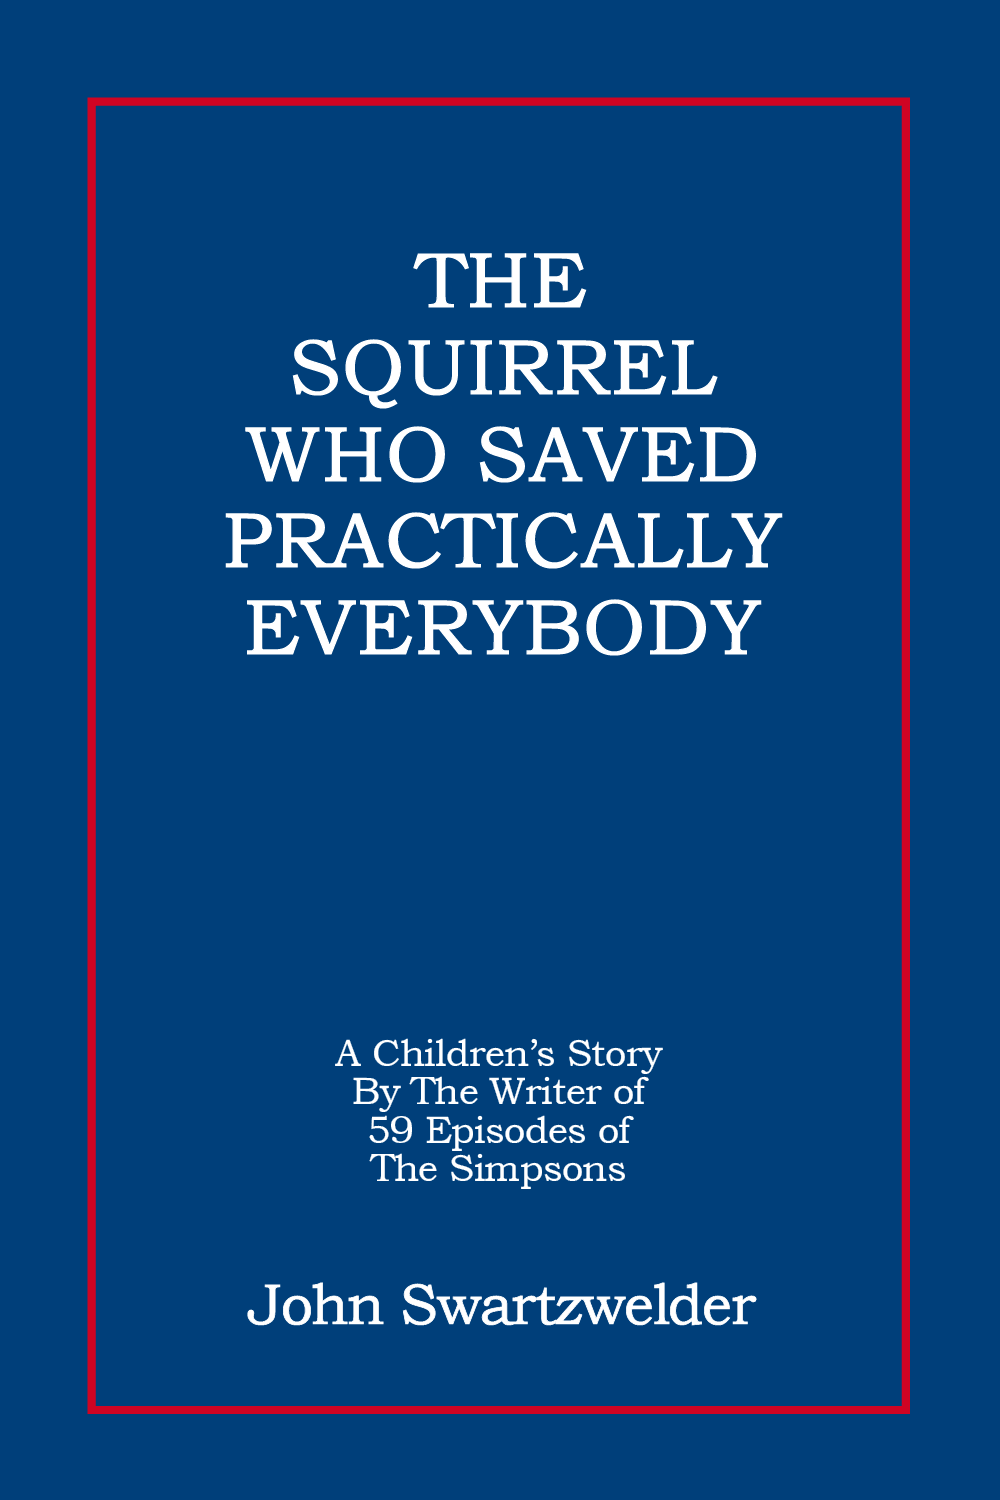 The Squirrel Who Saved Practically Everybody by John Swartzwelder